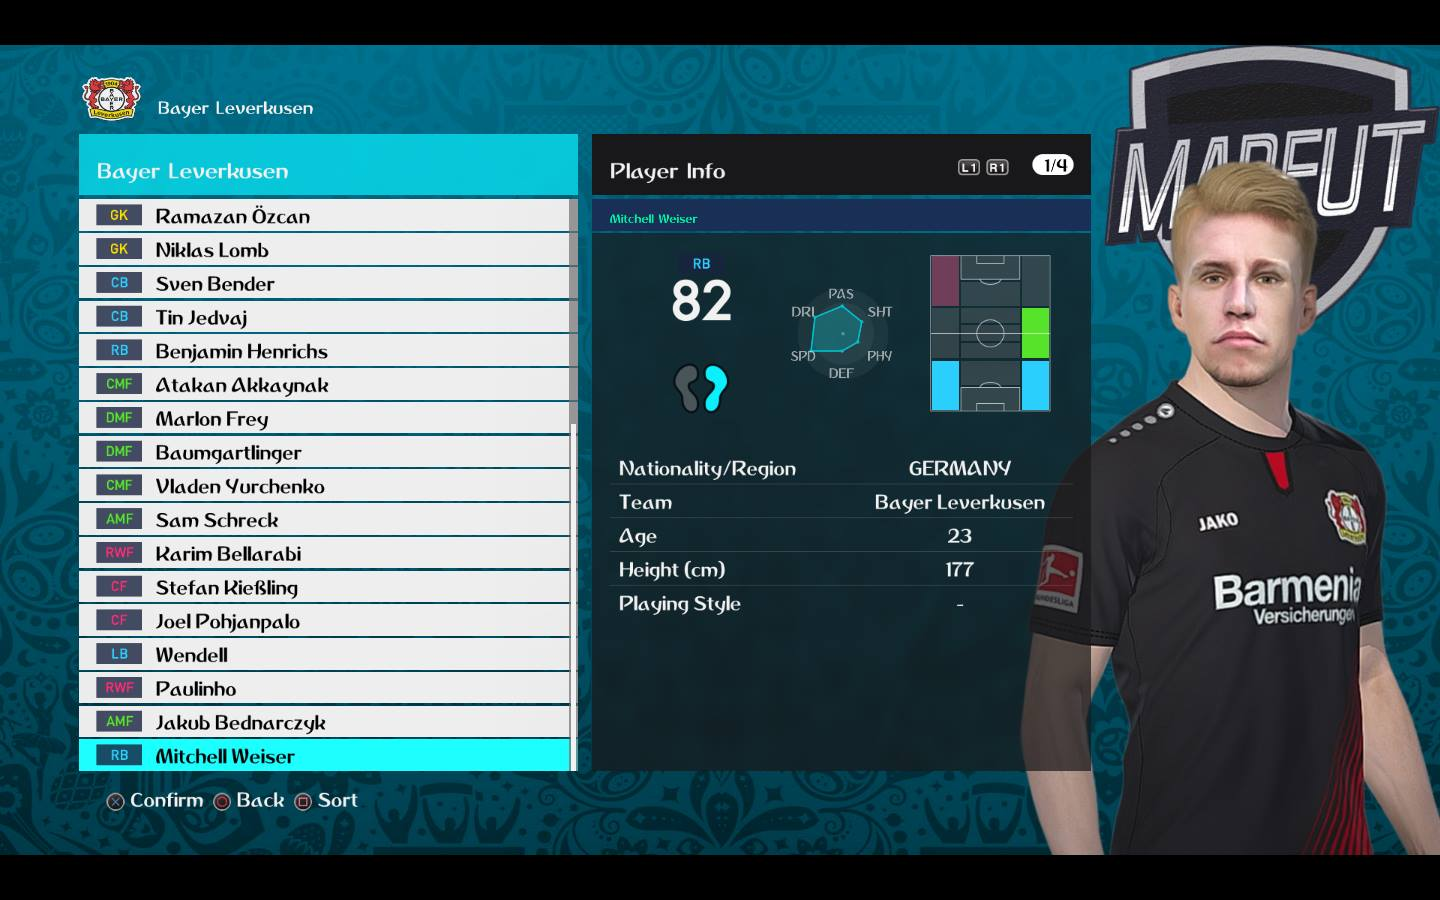 PES 2018 Mitchell Weiser Face by Facemaker VN HUY BUI